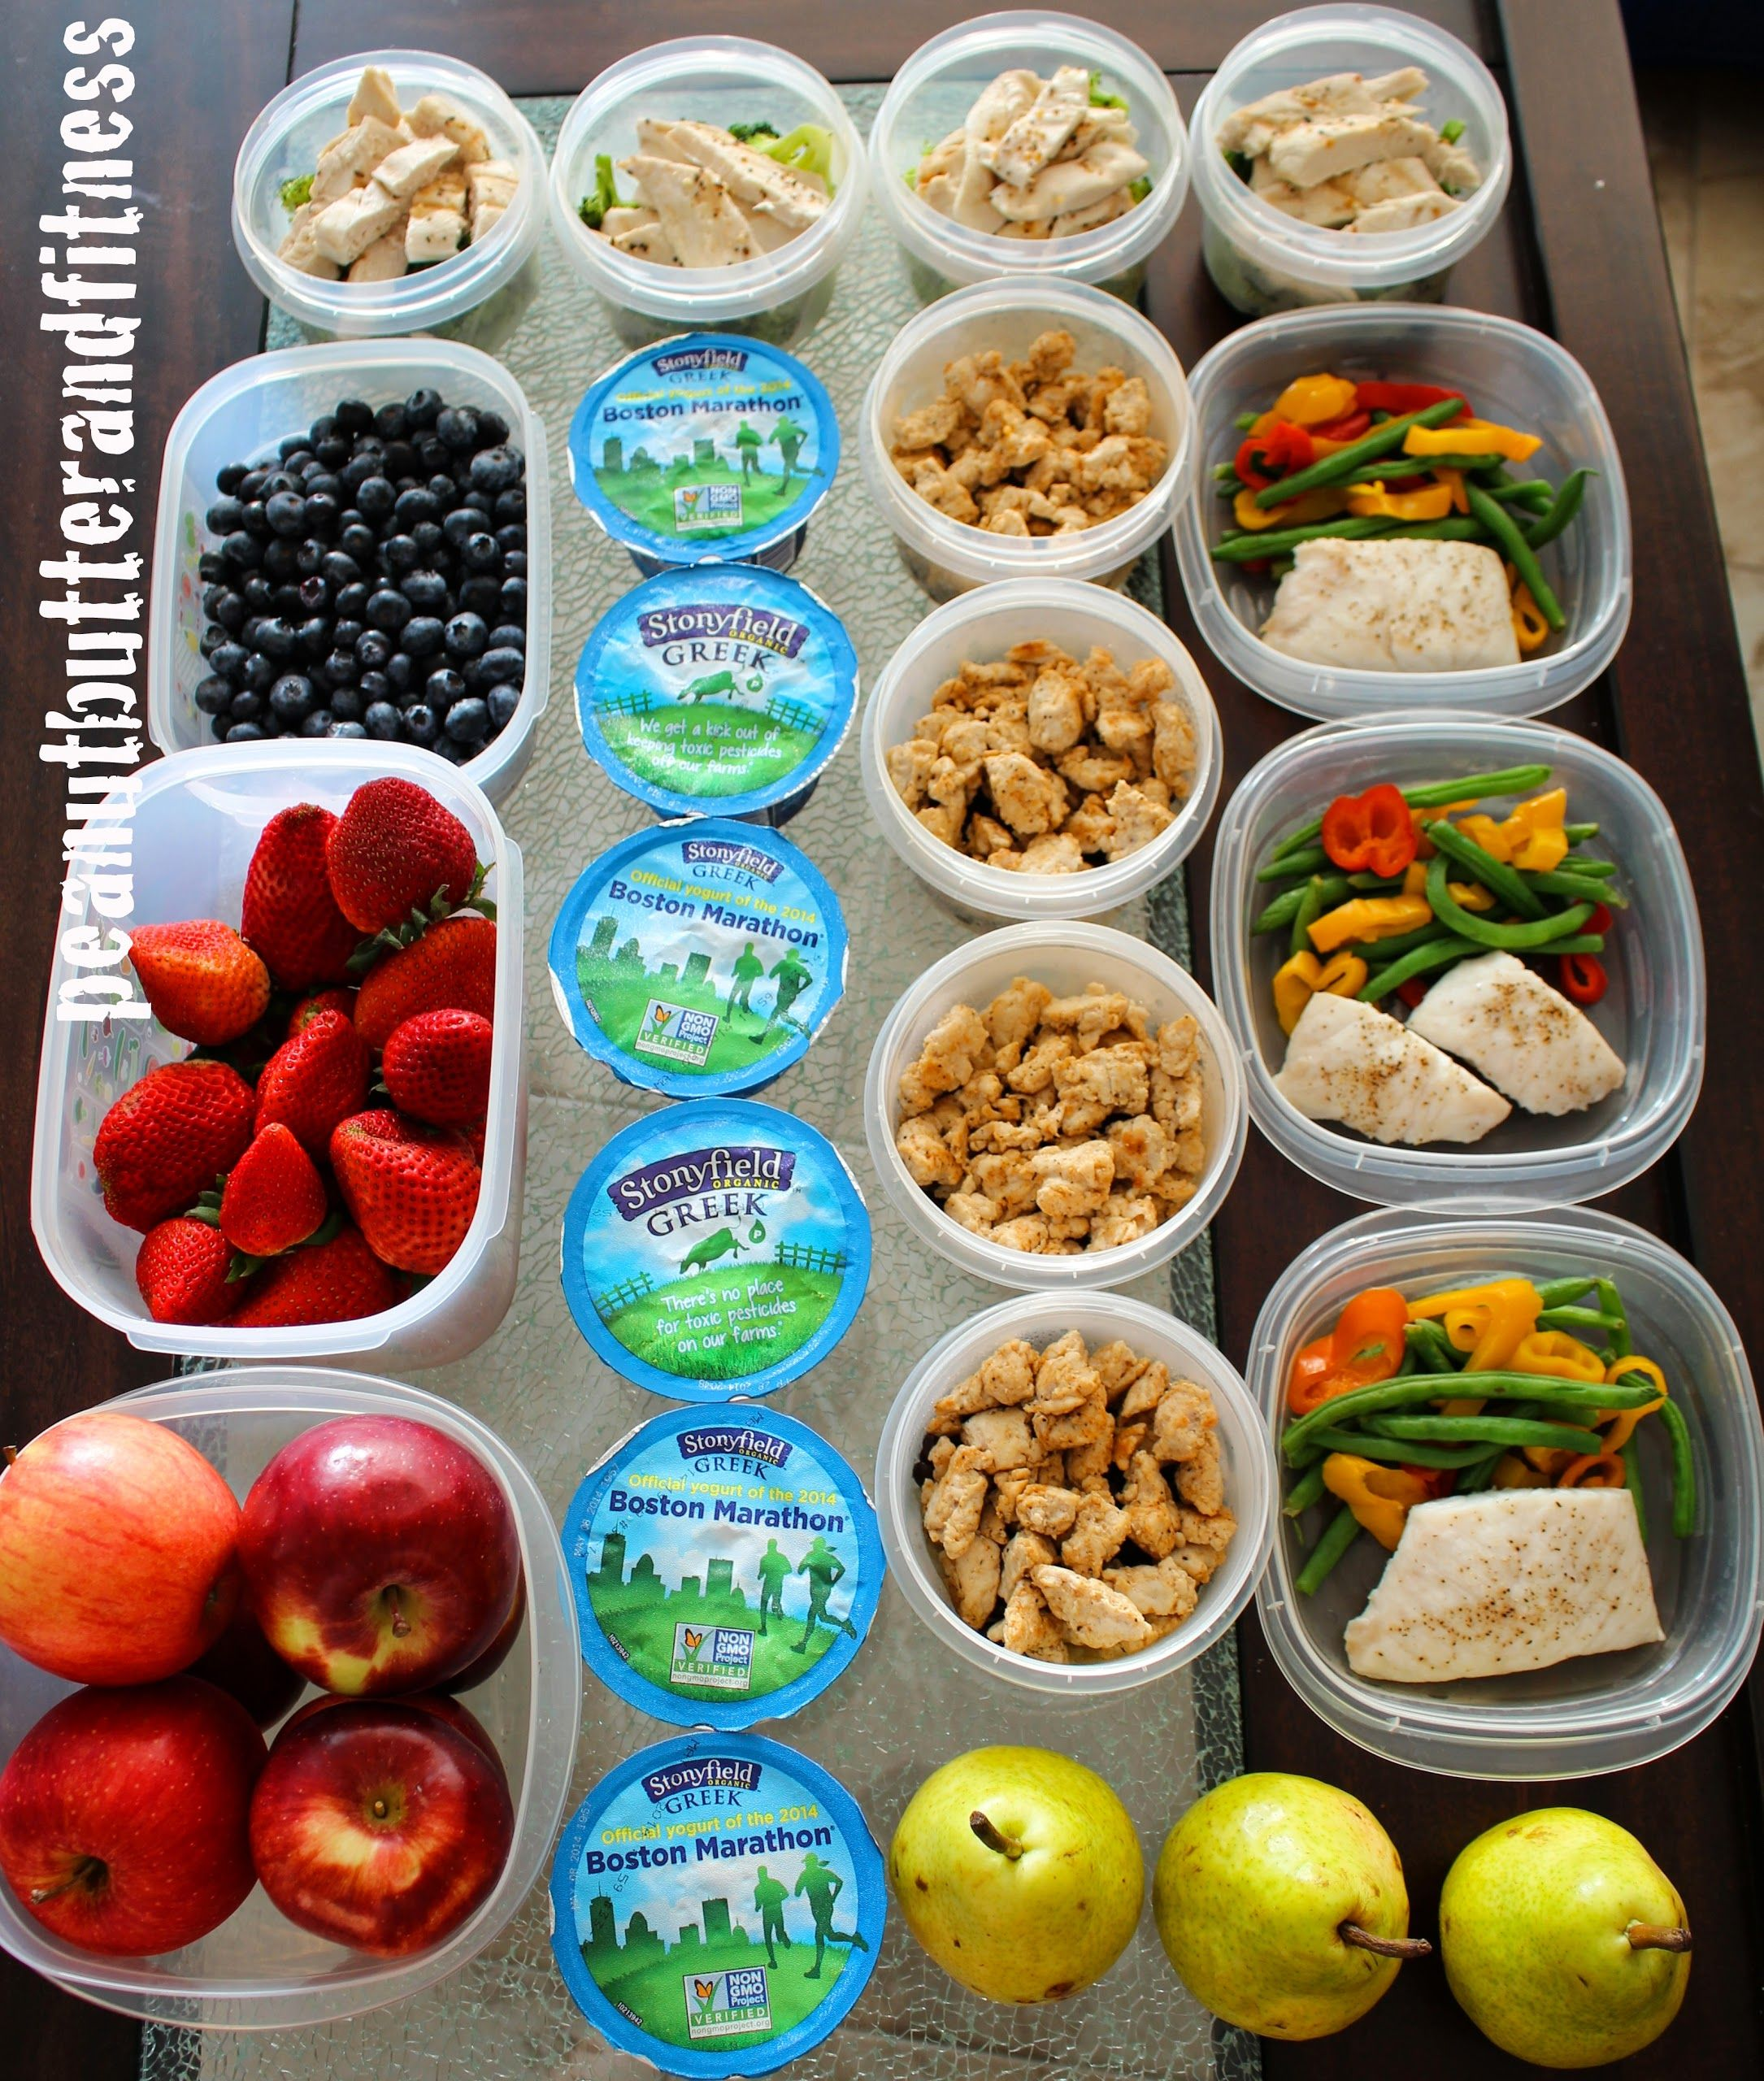 meal prep ideas flat belly and healthy organize healthy living cooking pinterest. Black Bedroom Furniture Sets. Home Design Ideas